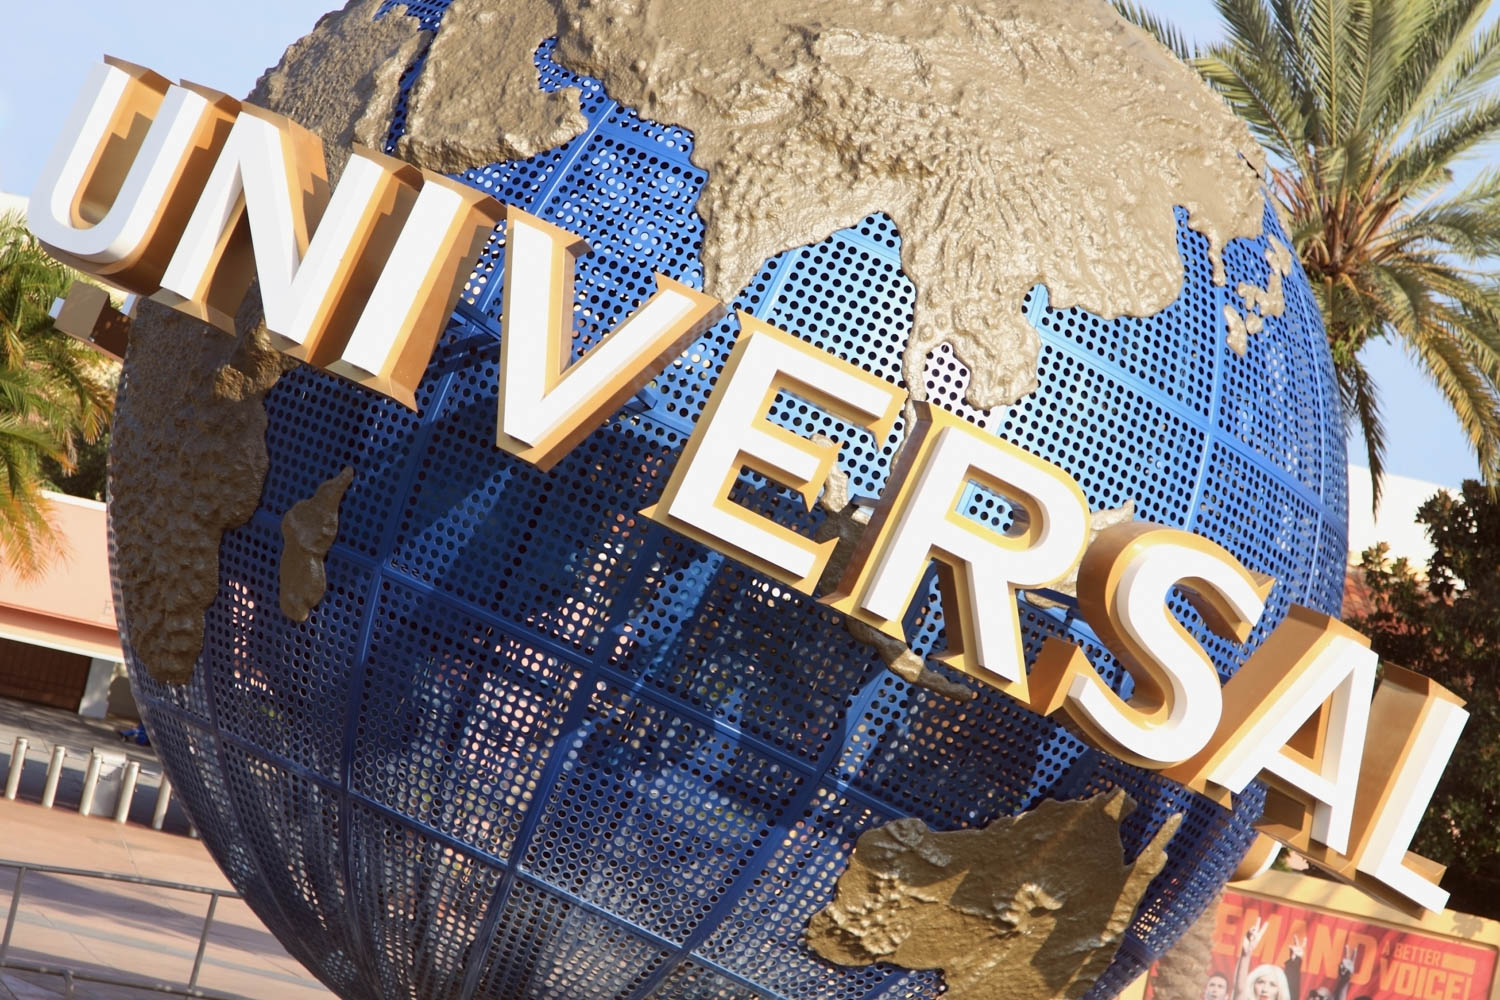 Universal Studios has popular Florida attractions for families. There are many things to do in Orlando with kids.